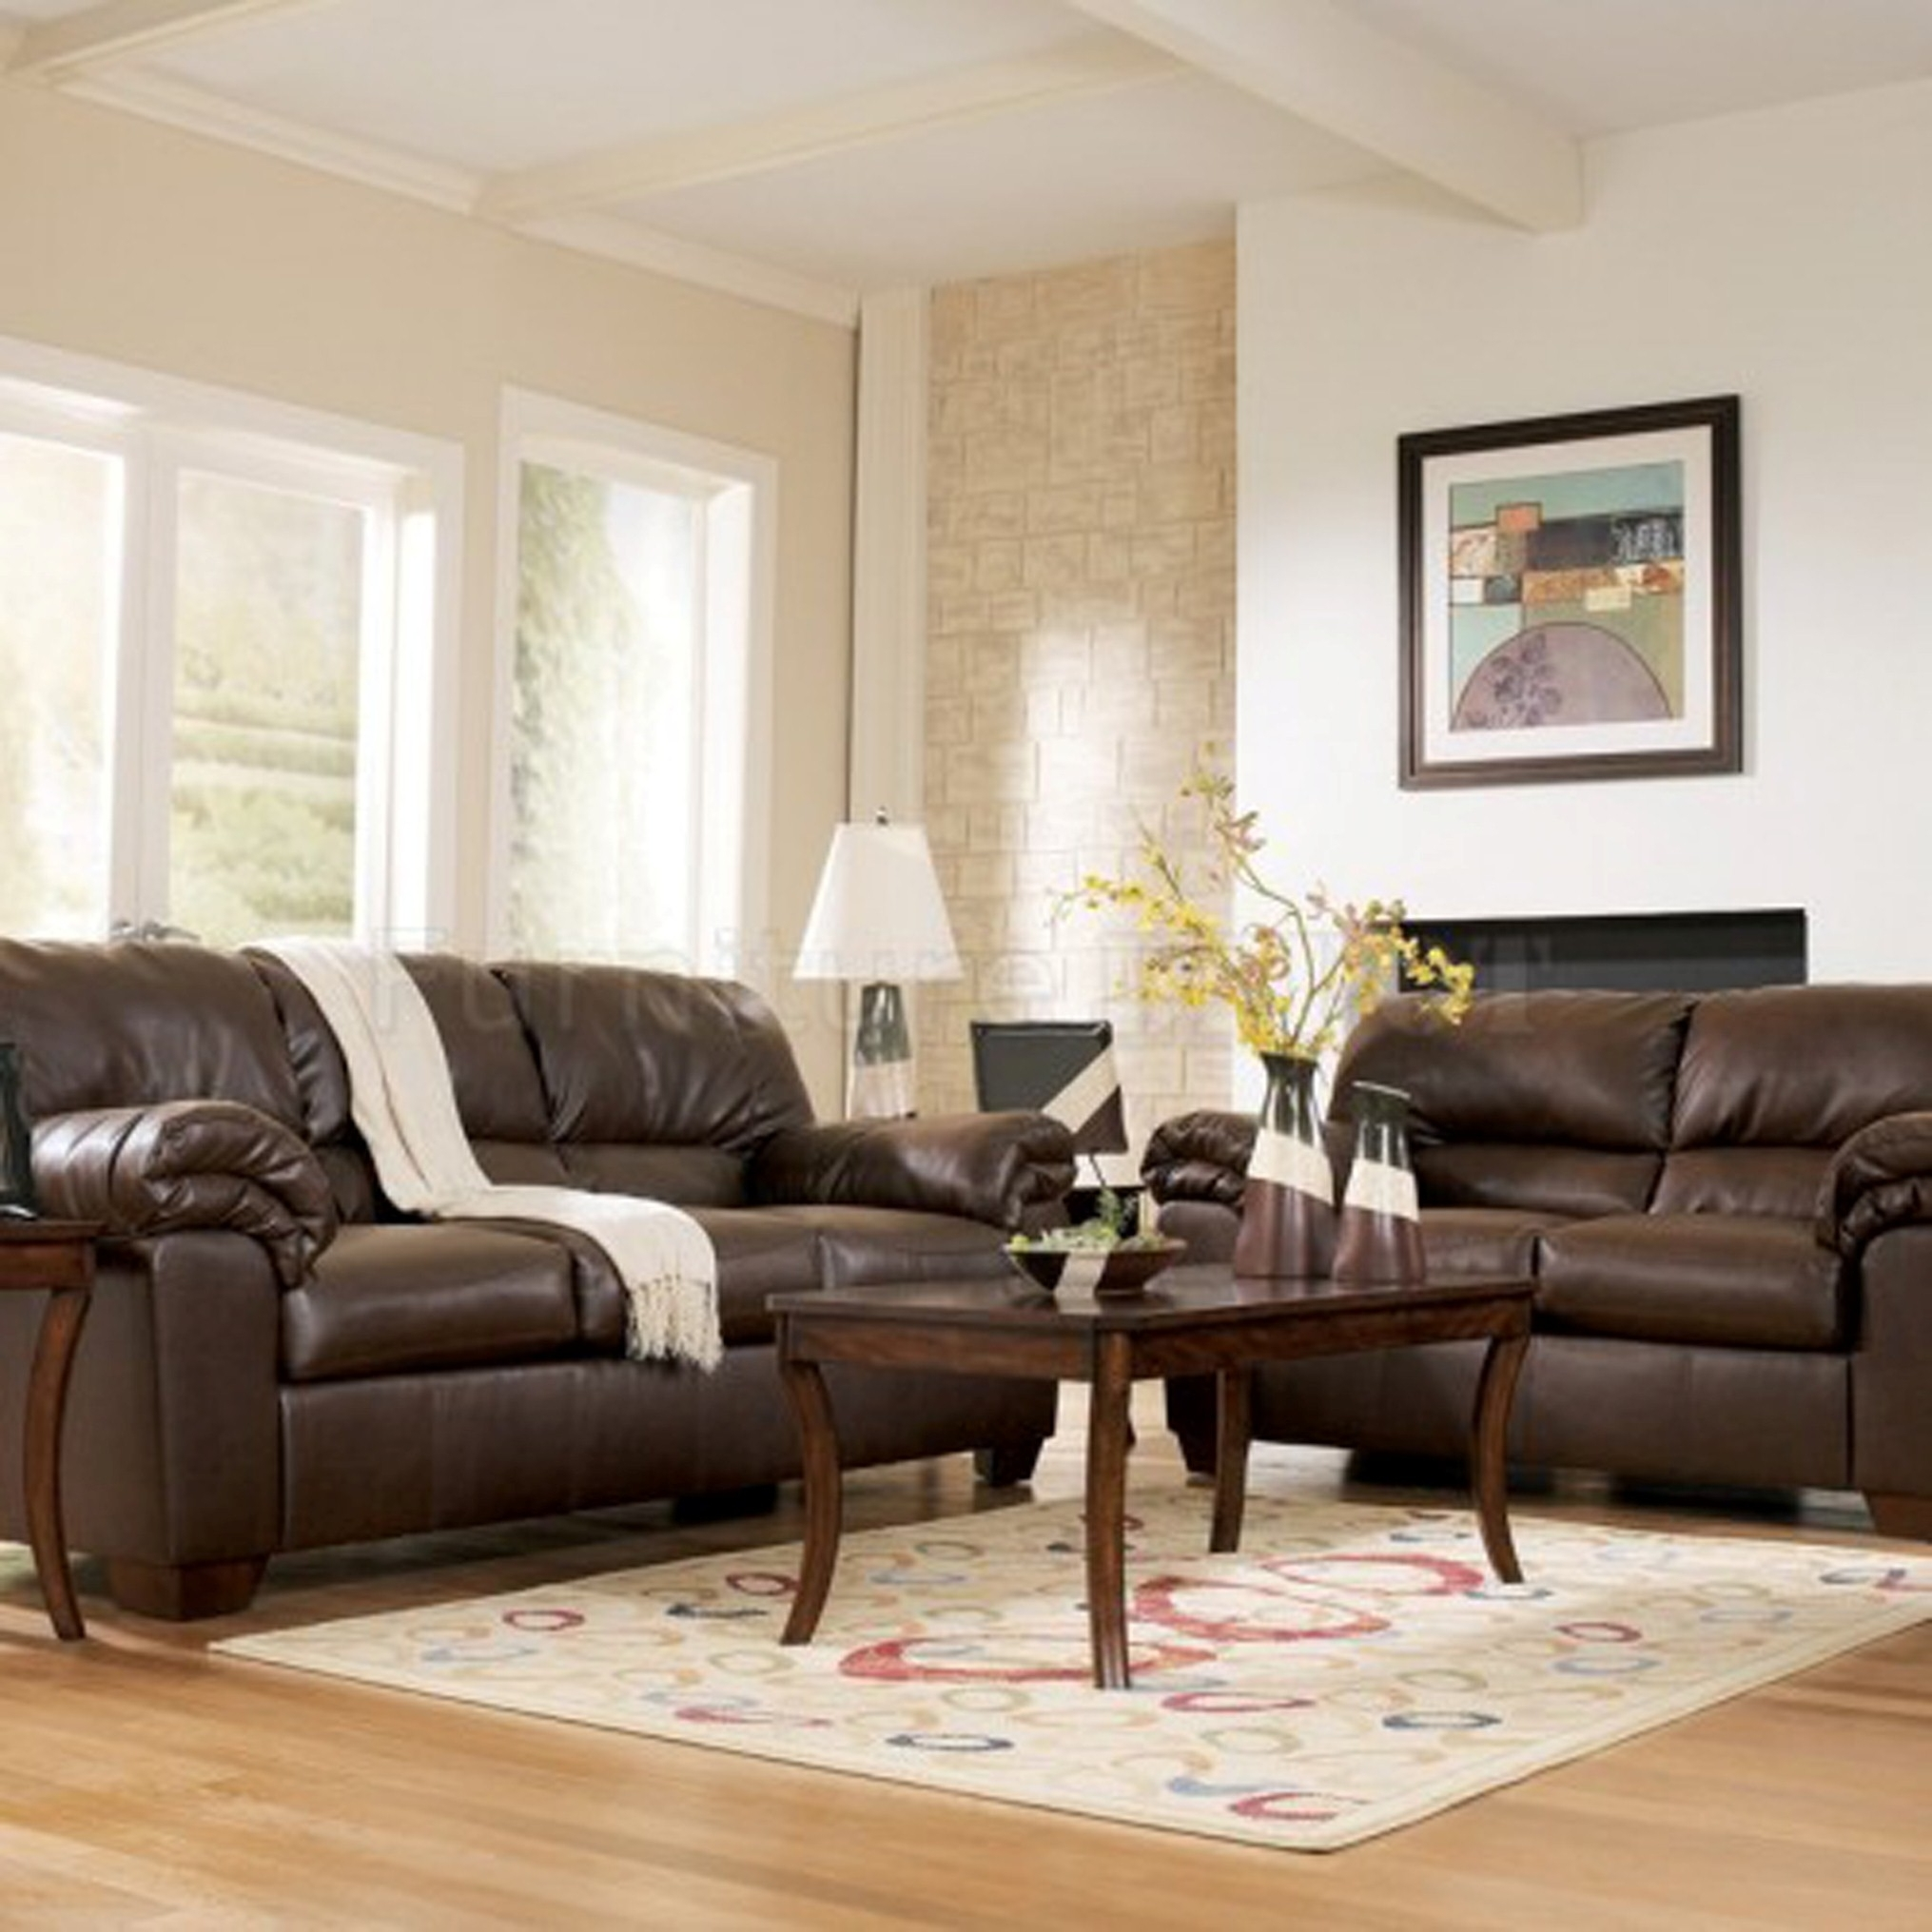 white leather sofa living room ideas living room ideas brown leather sofa 25250